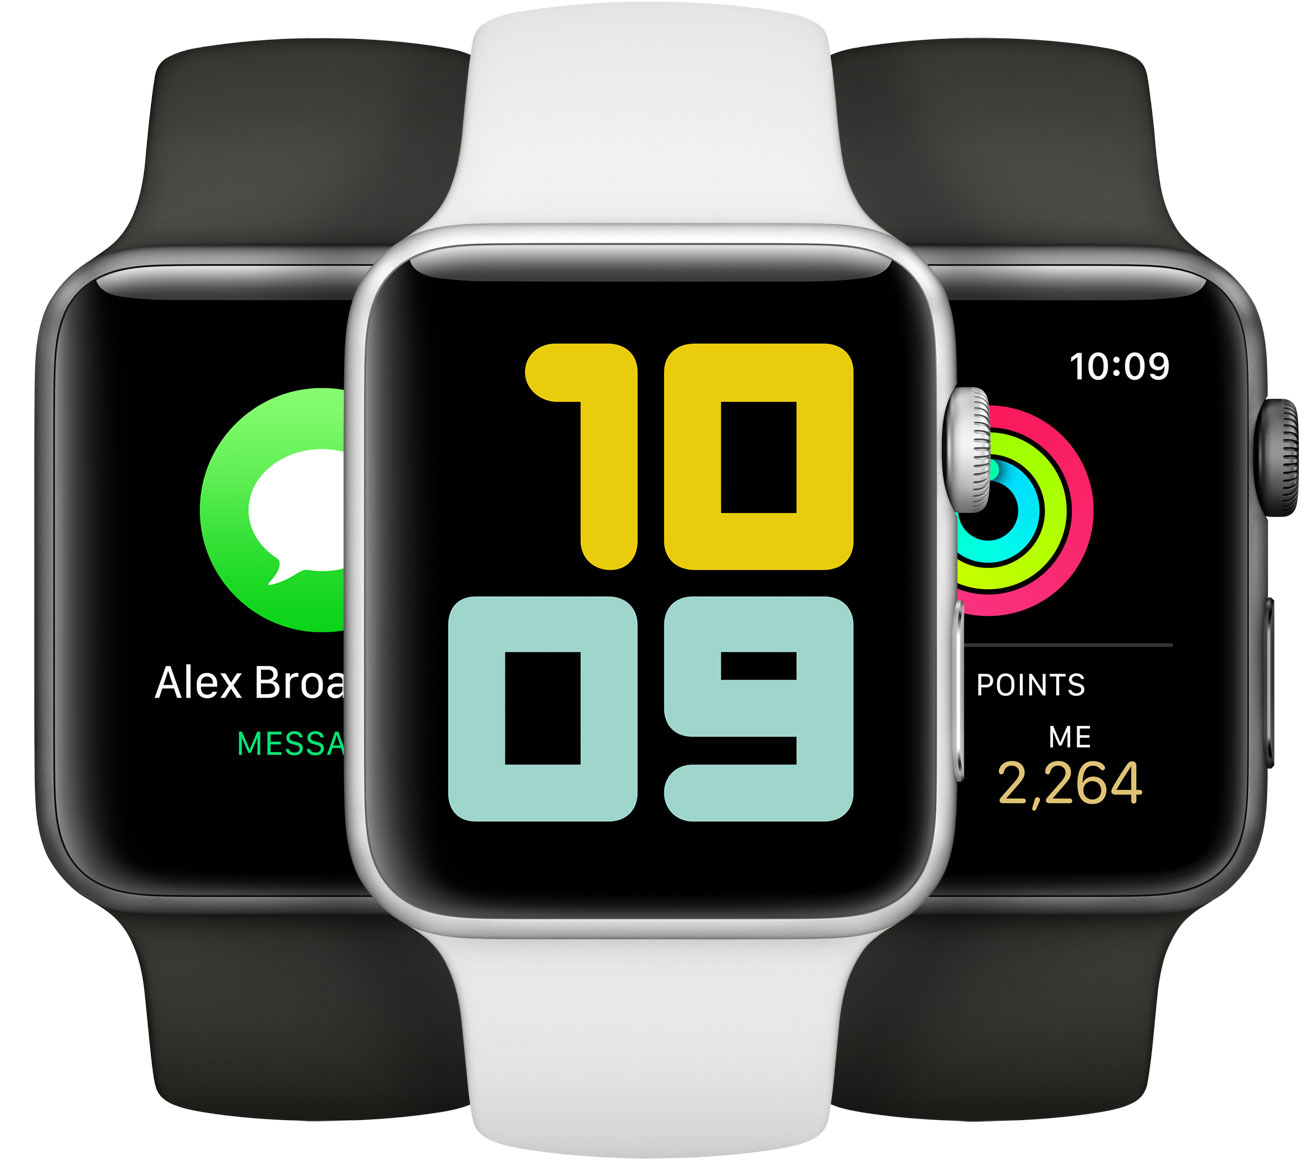 iOS 15 and watchOS 8: Much less space to update